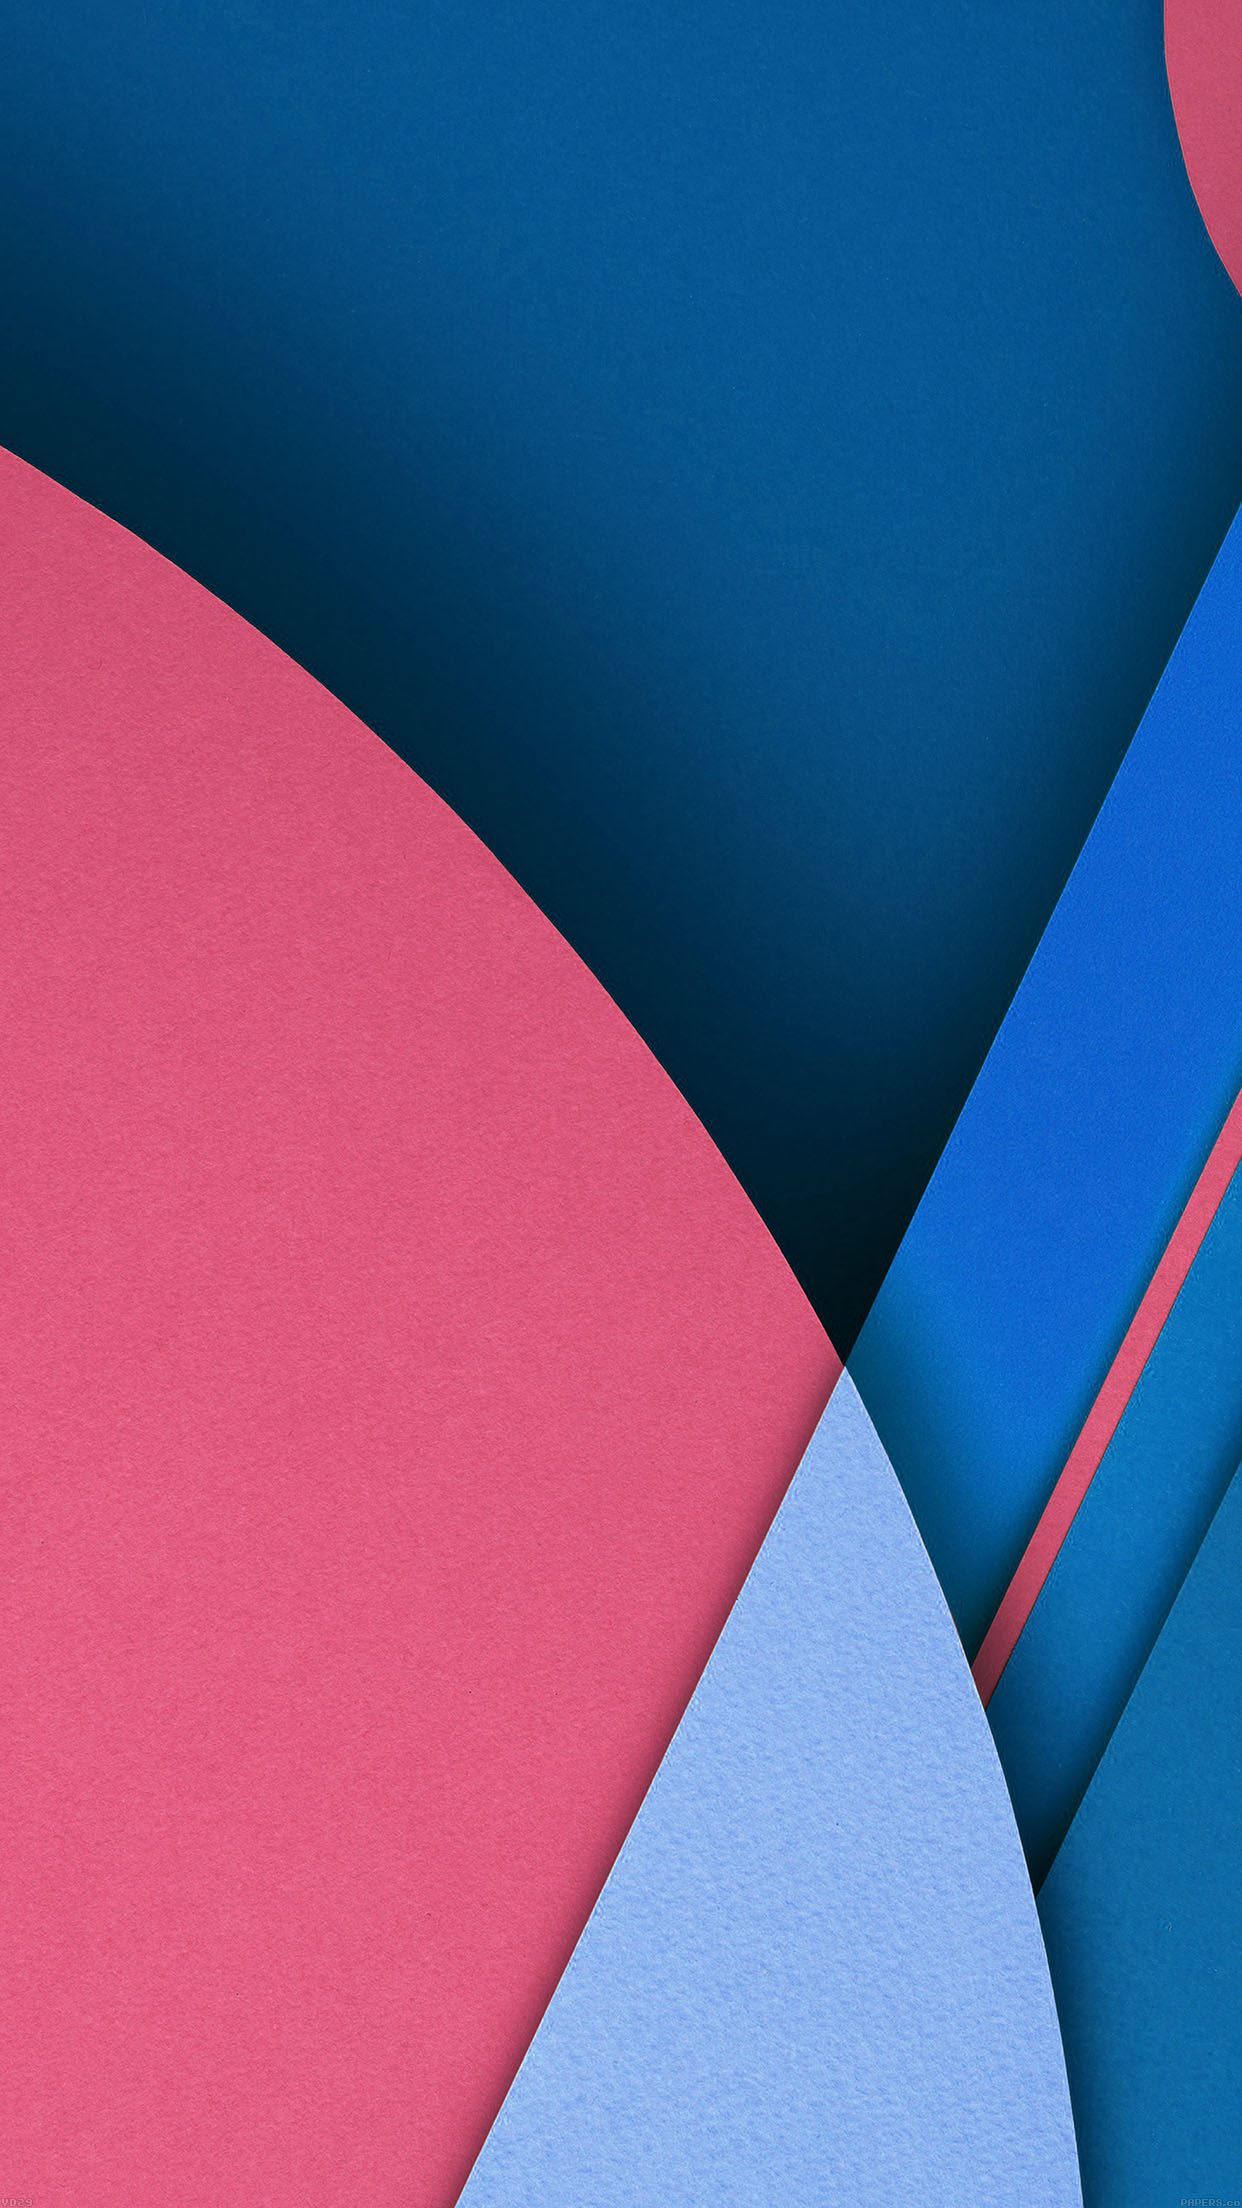 Lollipop Android Blue Official Wallpapers Set Android wallpaper